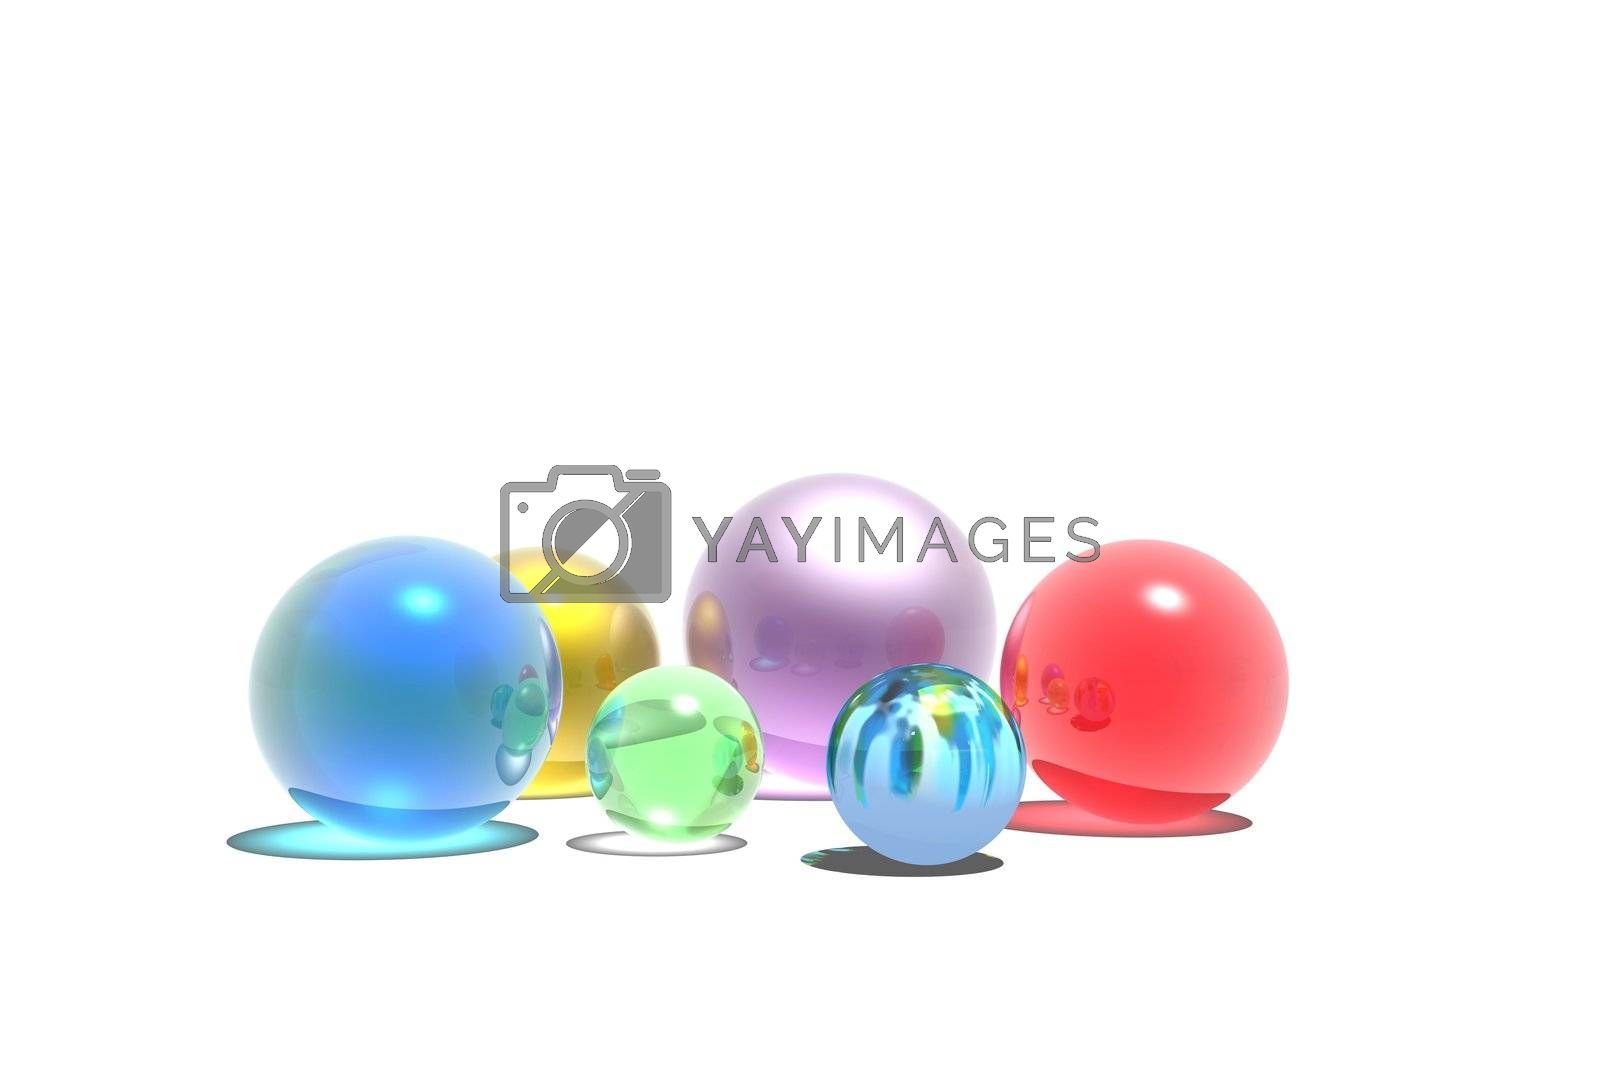 Children's game pieces for playing marbles.